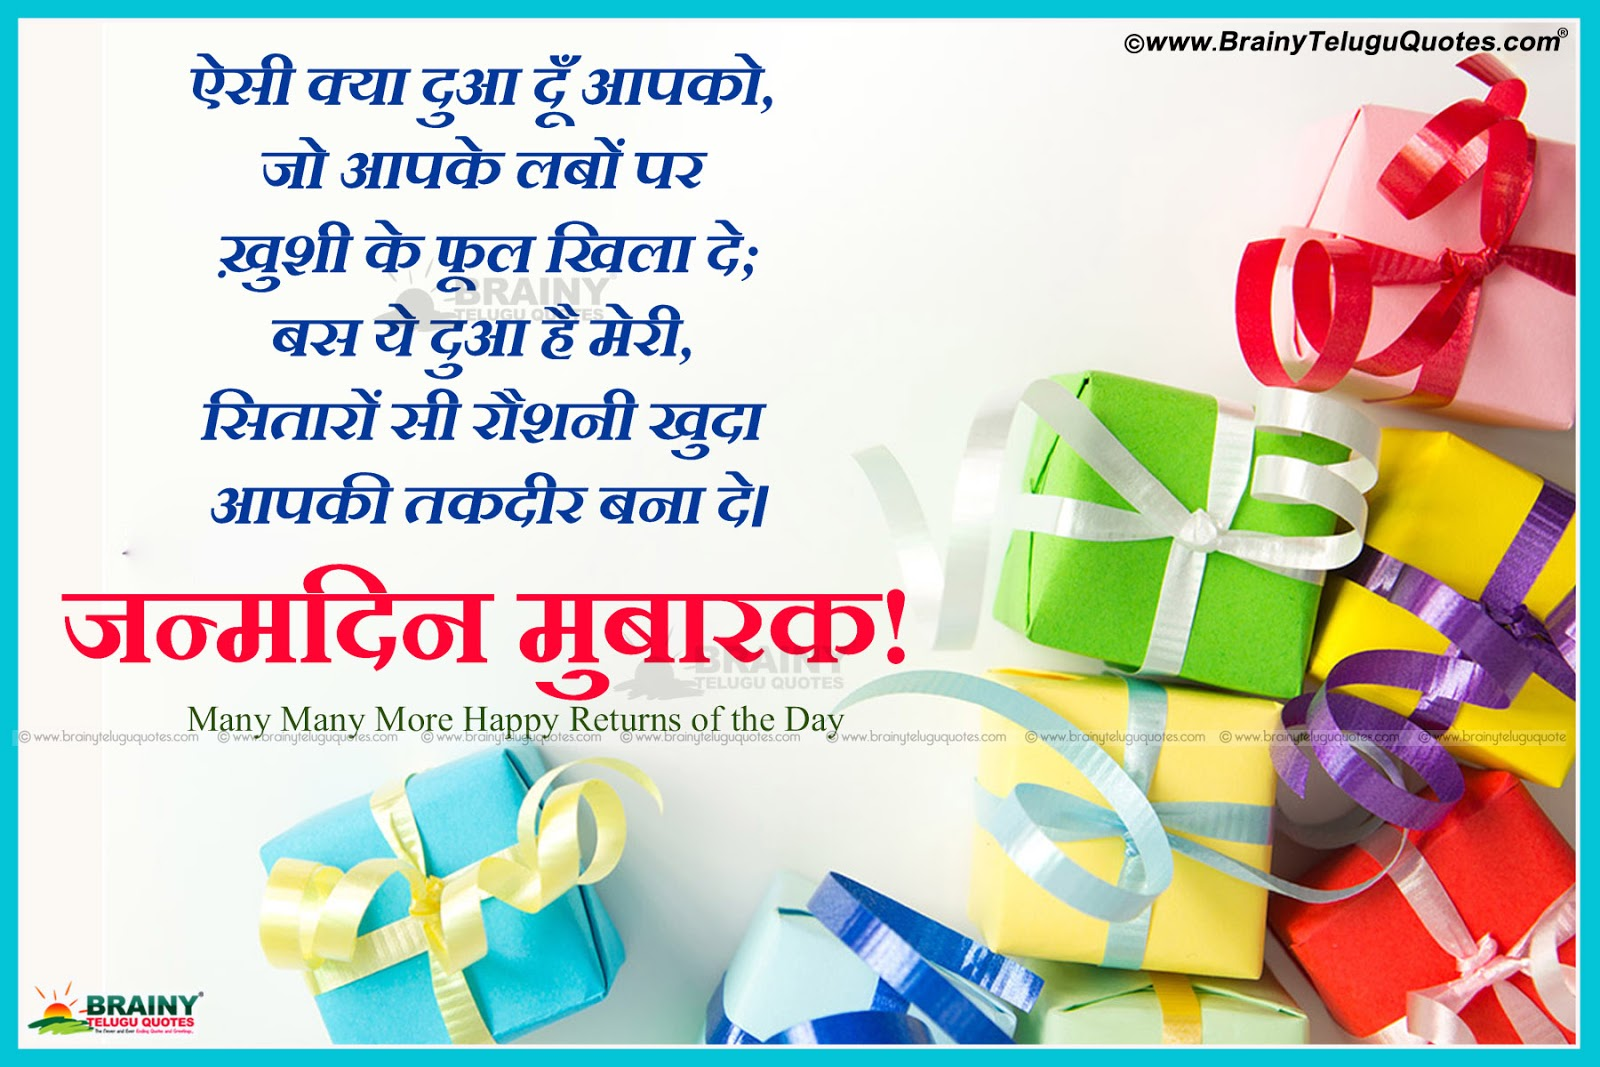 Birthday Wishes in Hindi Pictures Shayari Greetings Messages – Birthday Greetings in Hindi